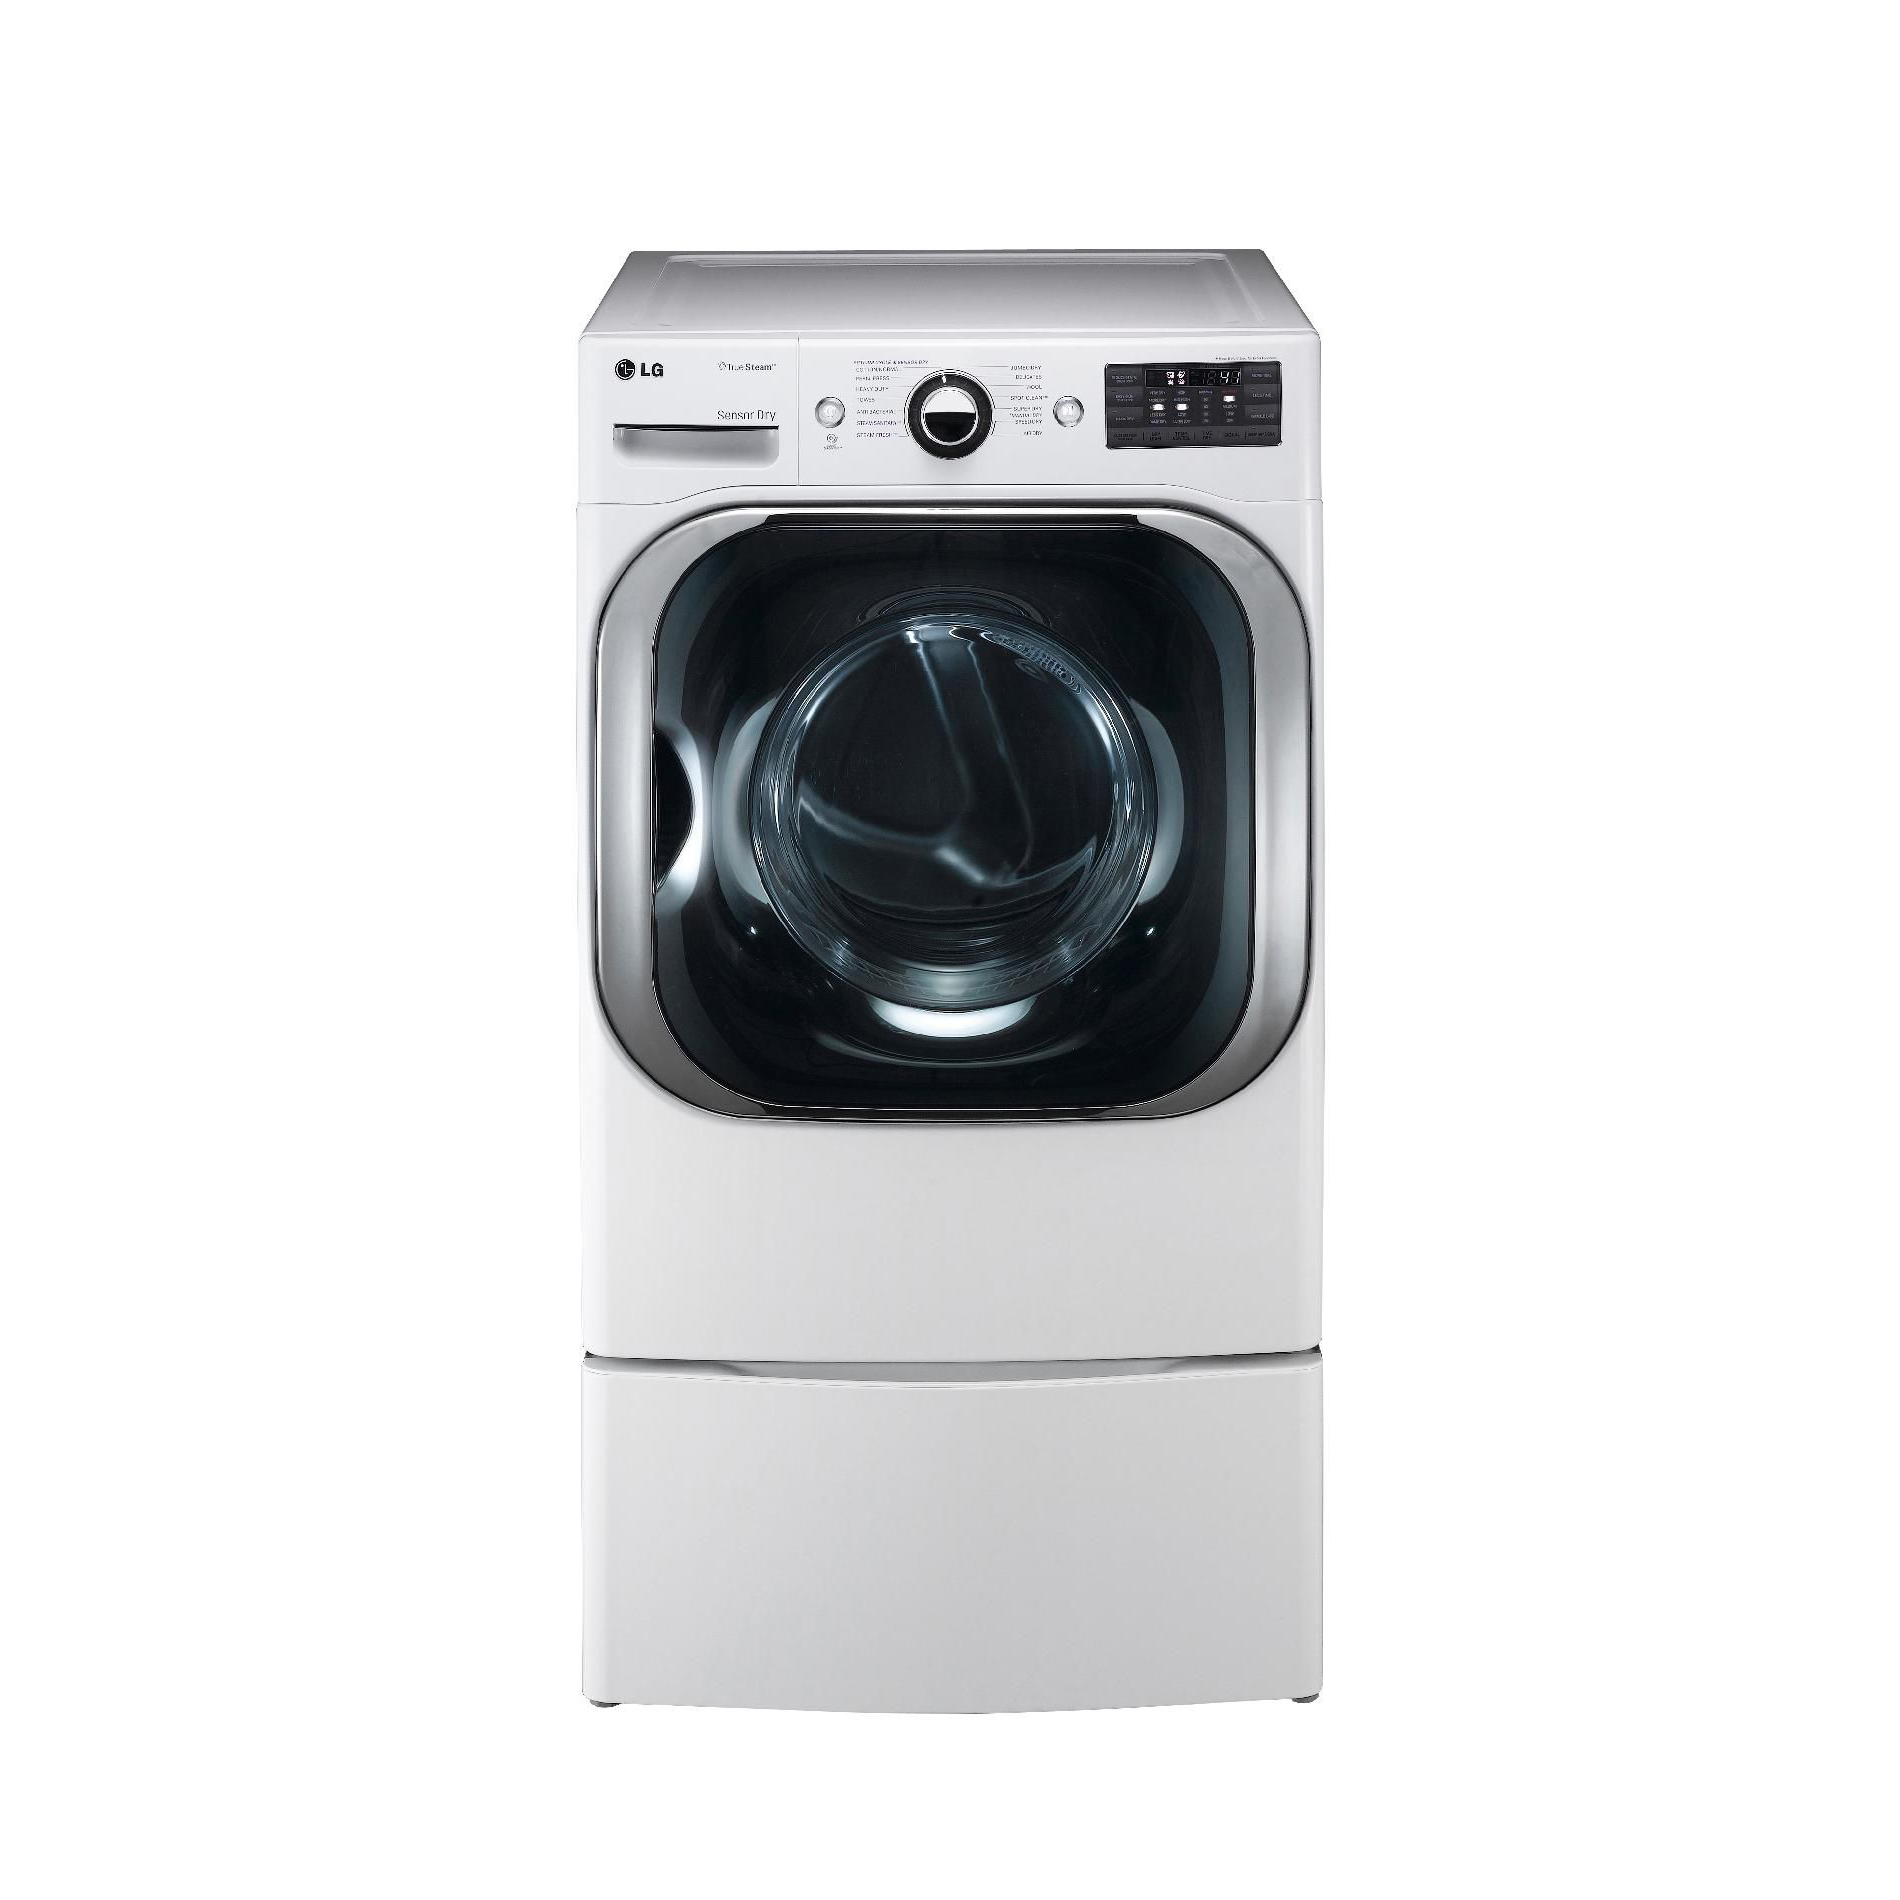 LG DLGX8001W 9.0 cu. ft. Mega-Capacity Steam Gas Dryer - White